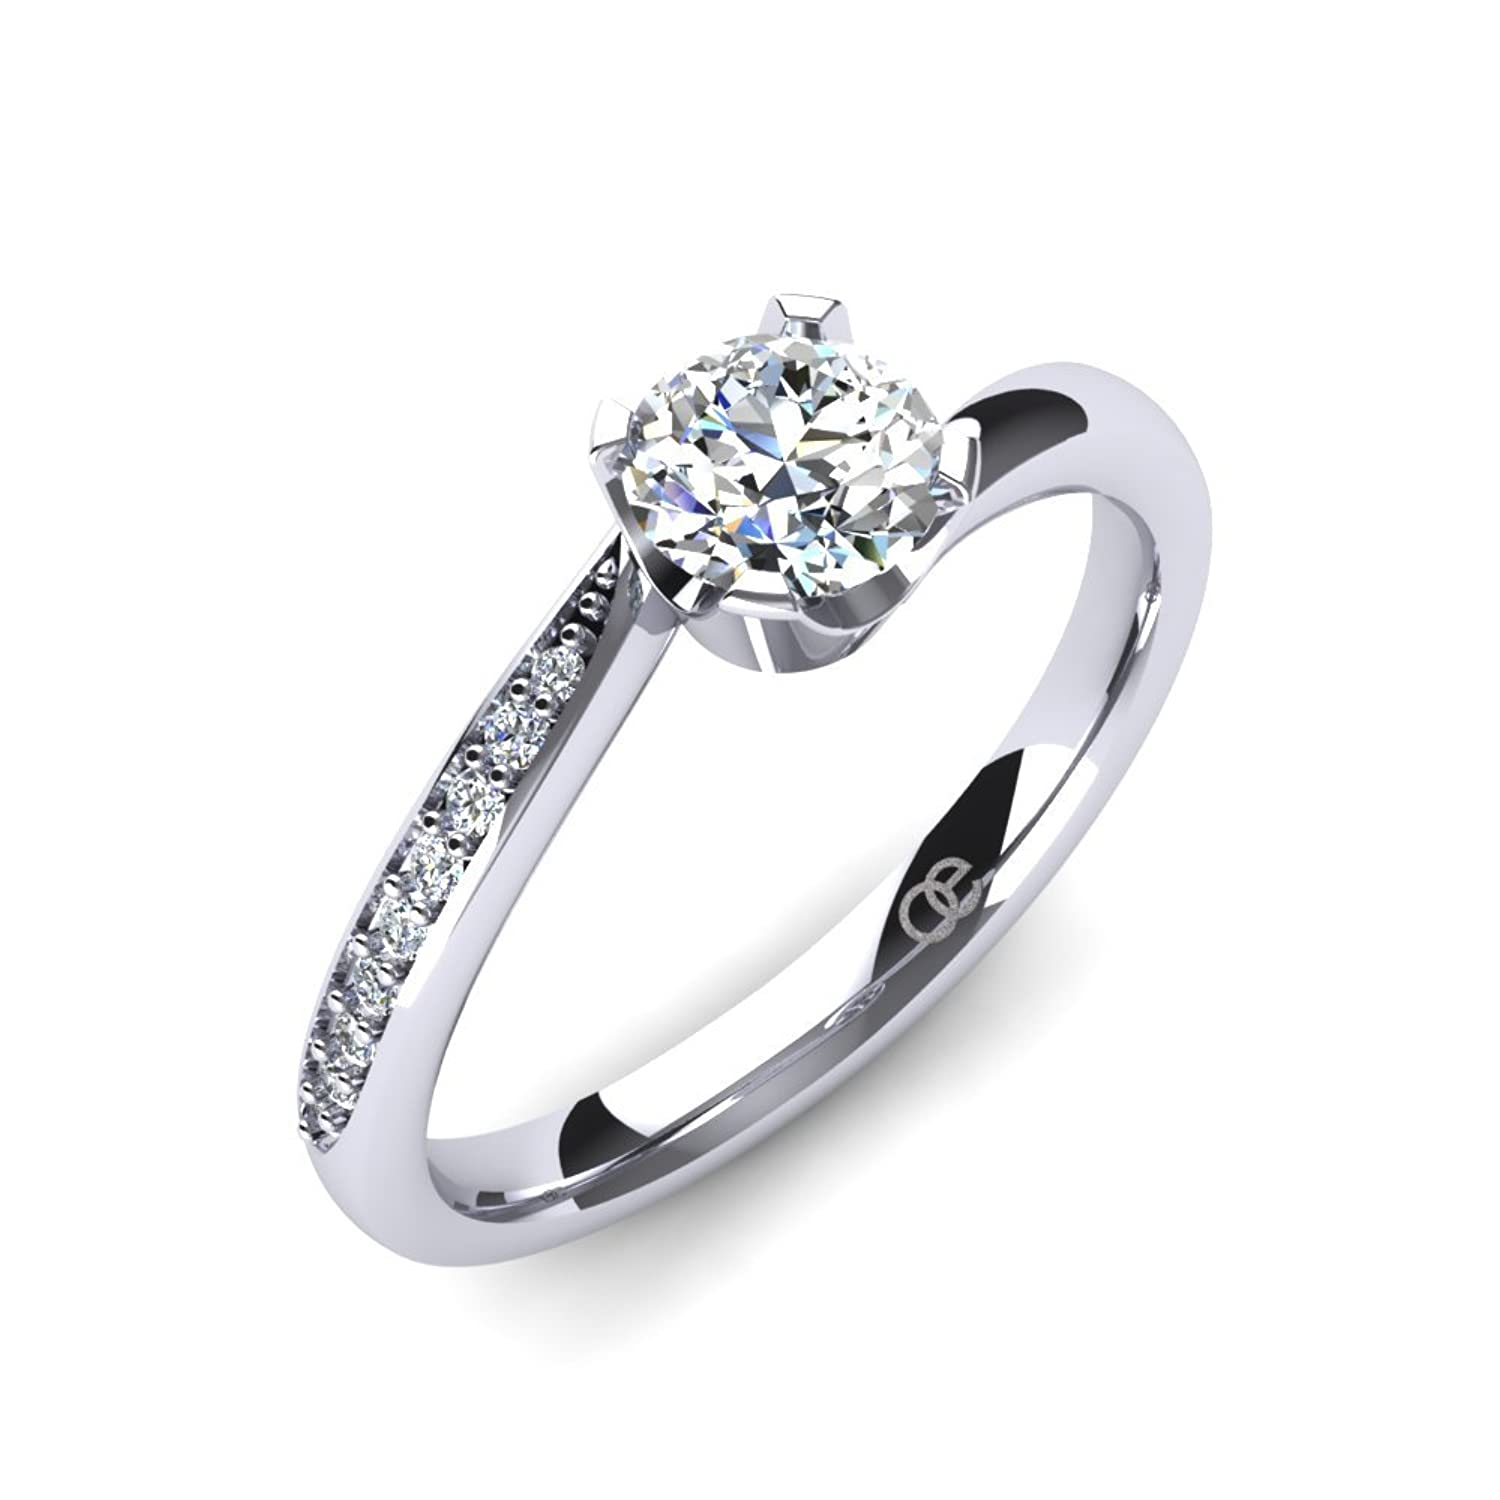 Moncoeur Diamonds Damen Ring Silber Immortelle 925 Sterlingsilber